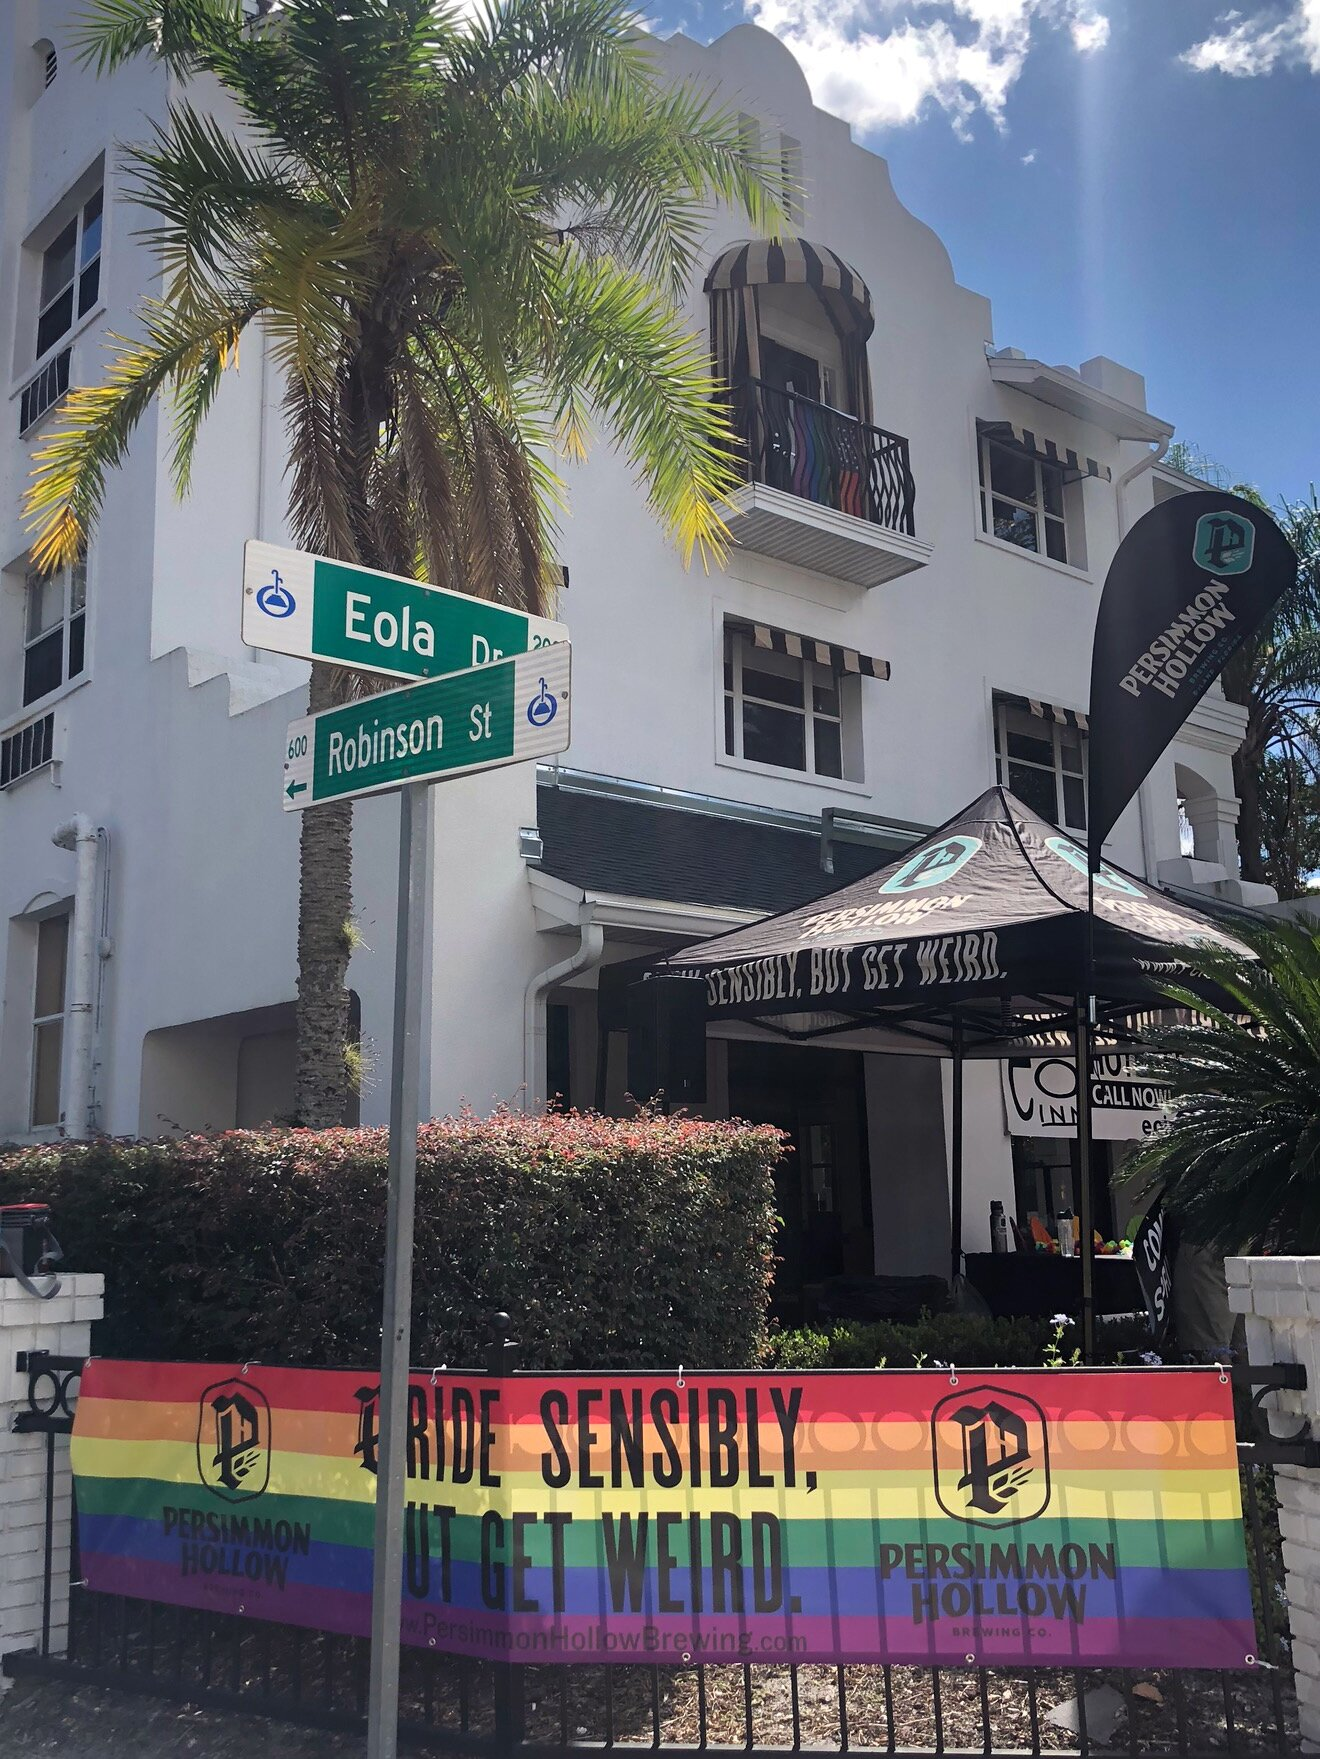 Pictured: Persimmon Hollow set up for the Come Out With Pride Orlando festival on October 12th.